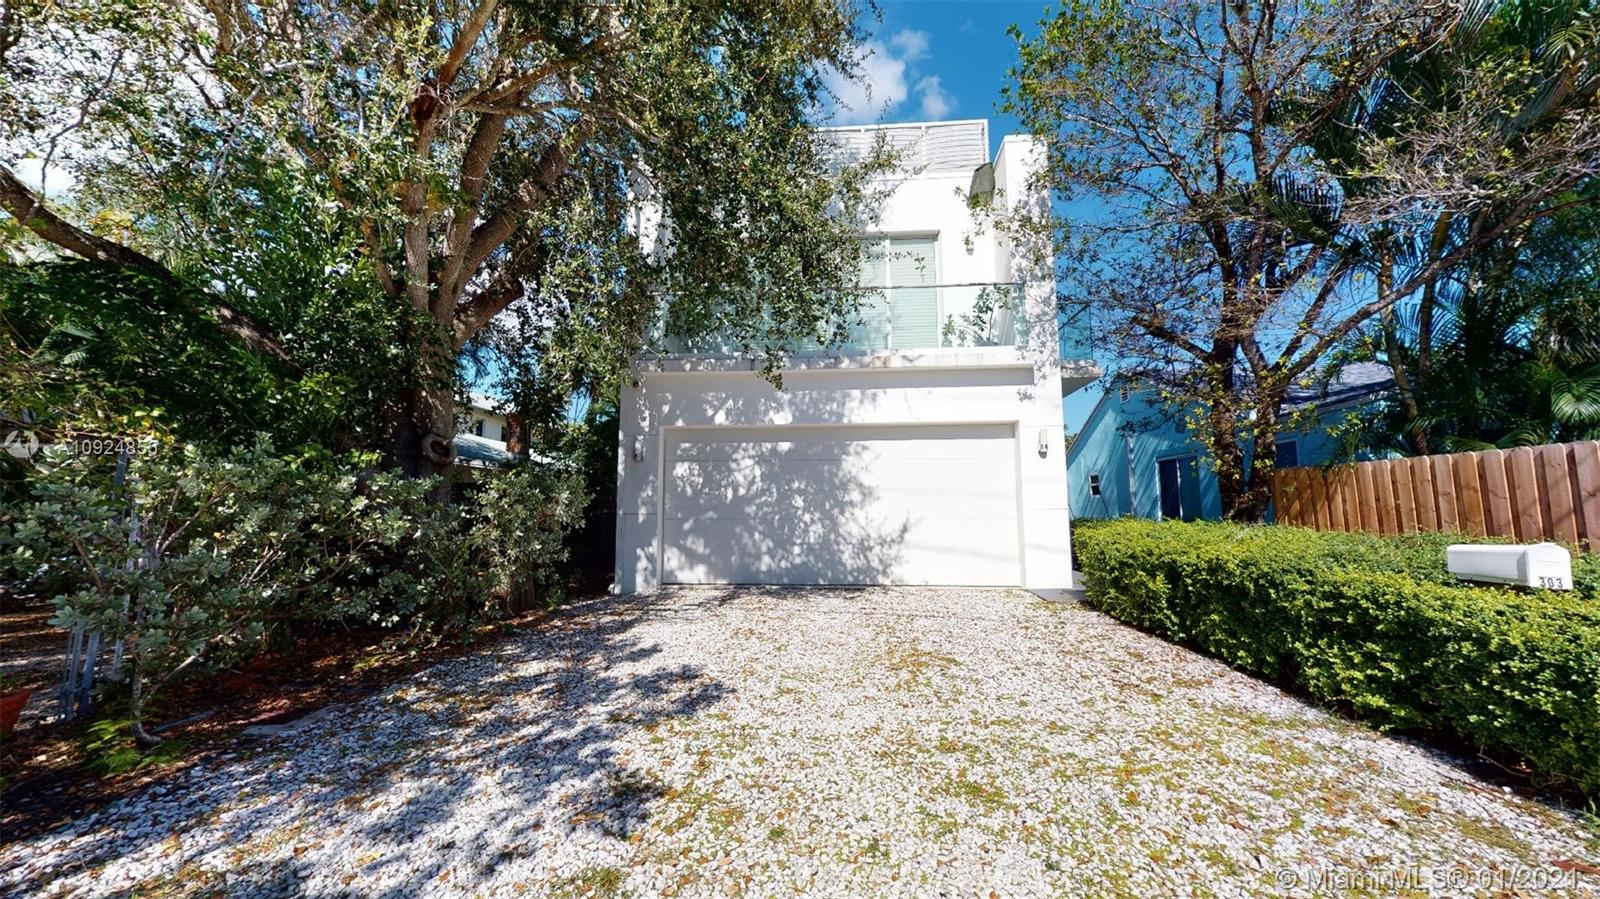 Modern construction, this fabulous 5 Bedroom, 3.5 Bath home in Southwest Florida awaits its new owner.  With a stunning roof top terrace and abounding 23' ceilings, this spacious home offers it all. This is a MUST SEE!!  Available to show after October 2, 2020.